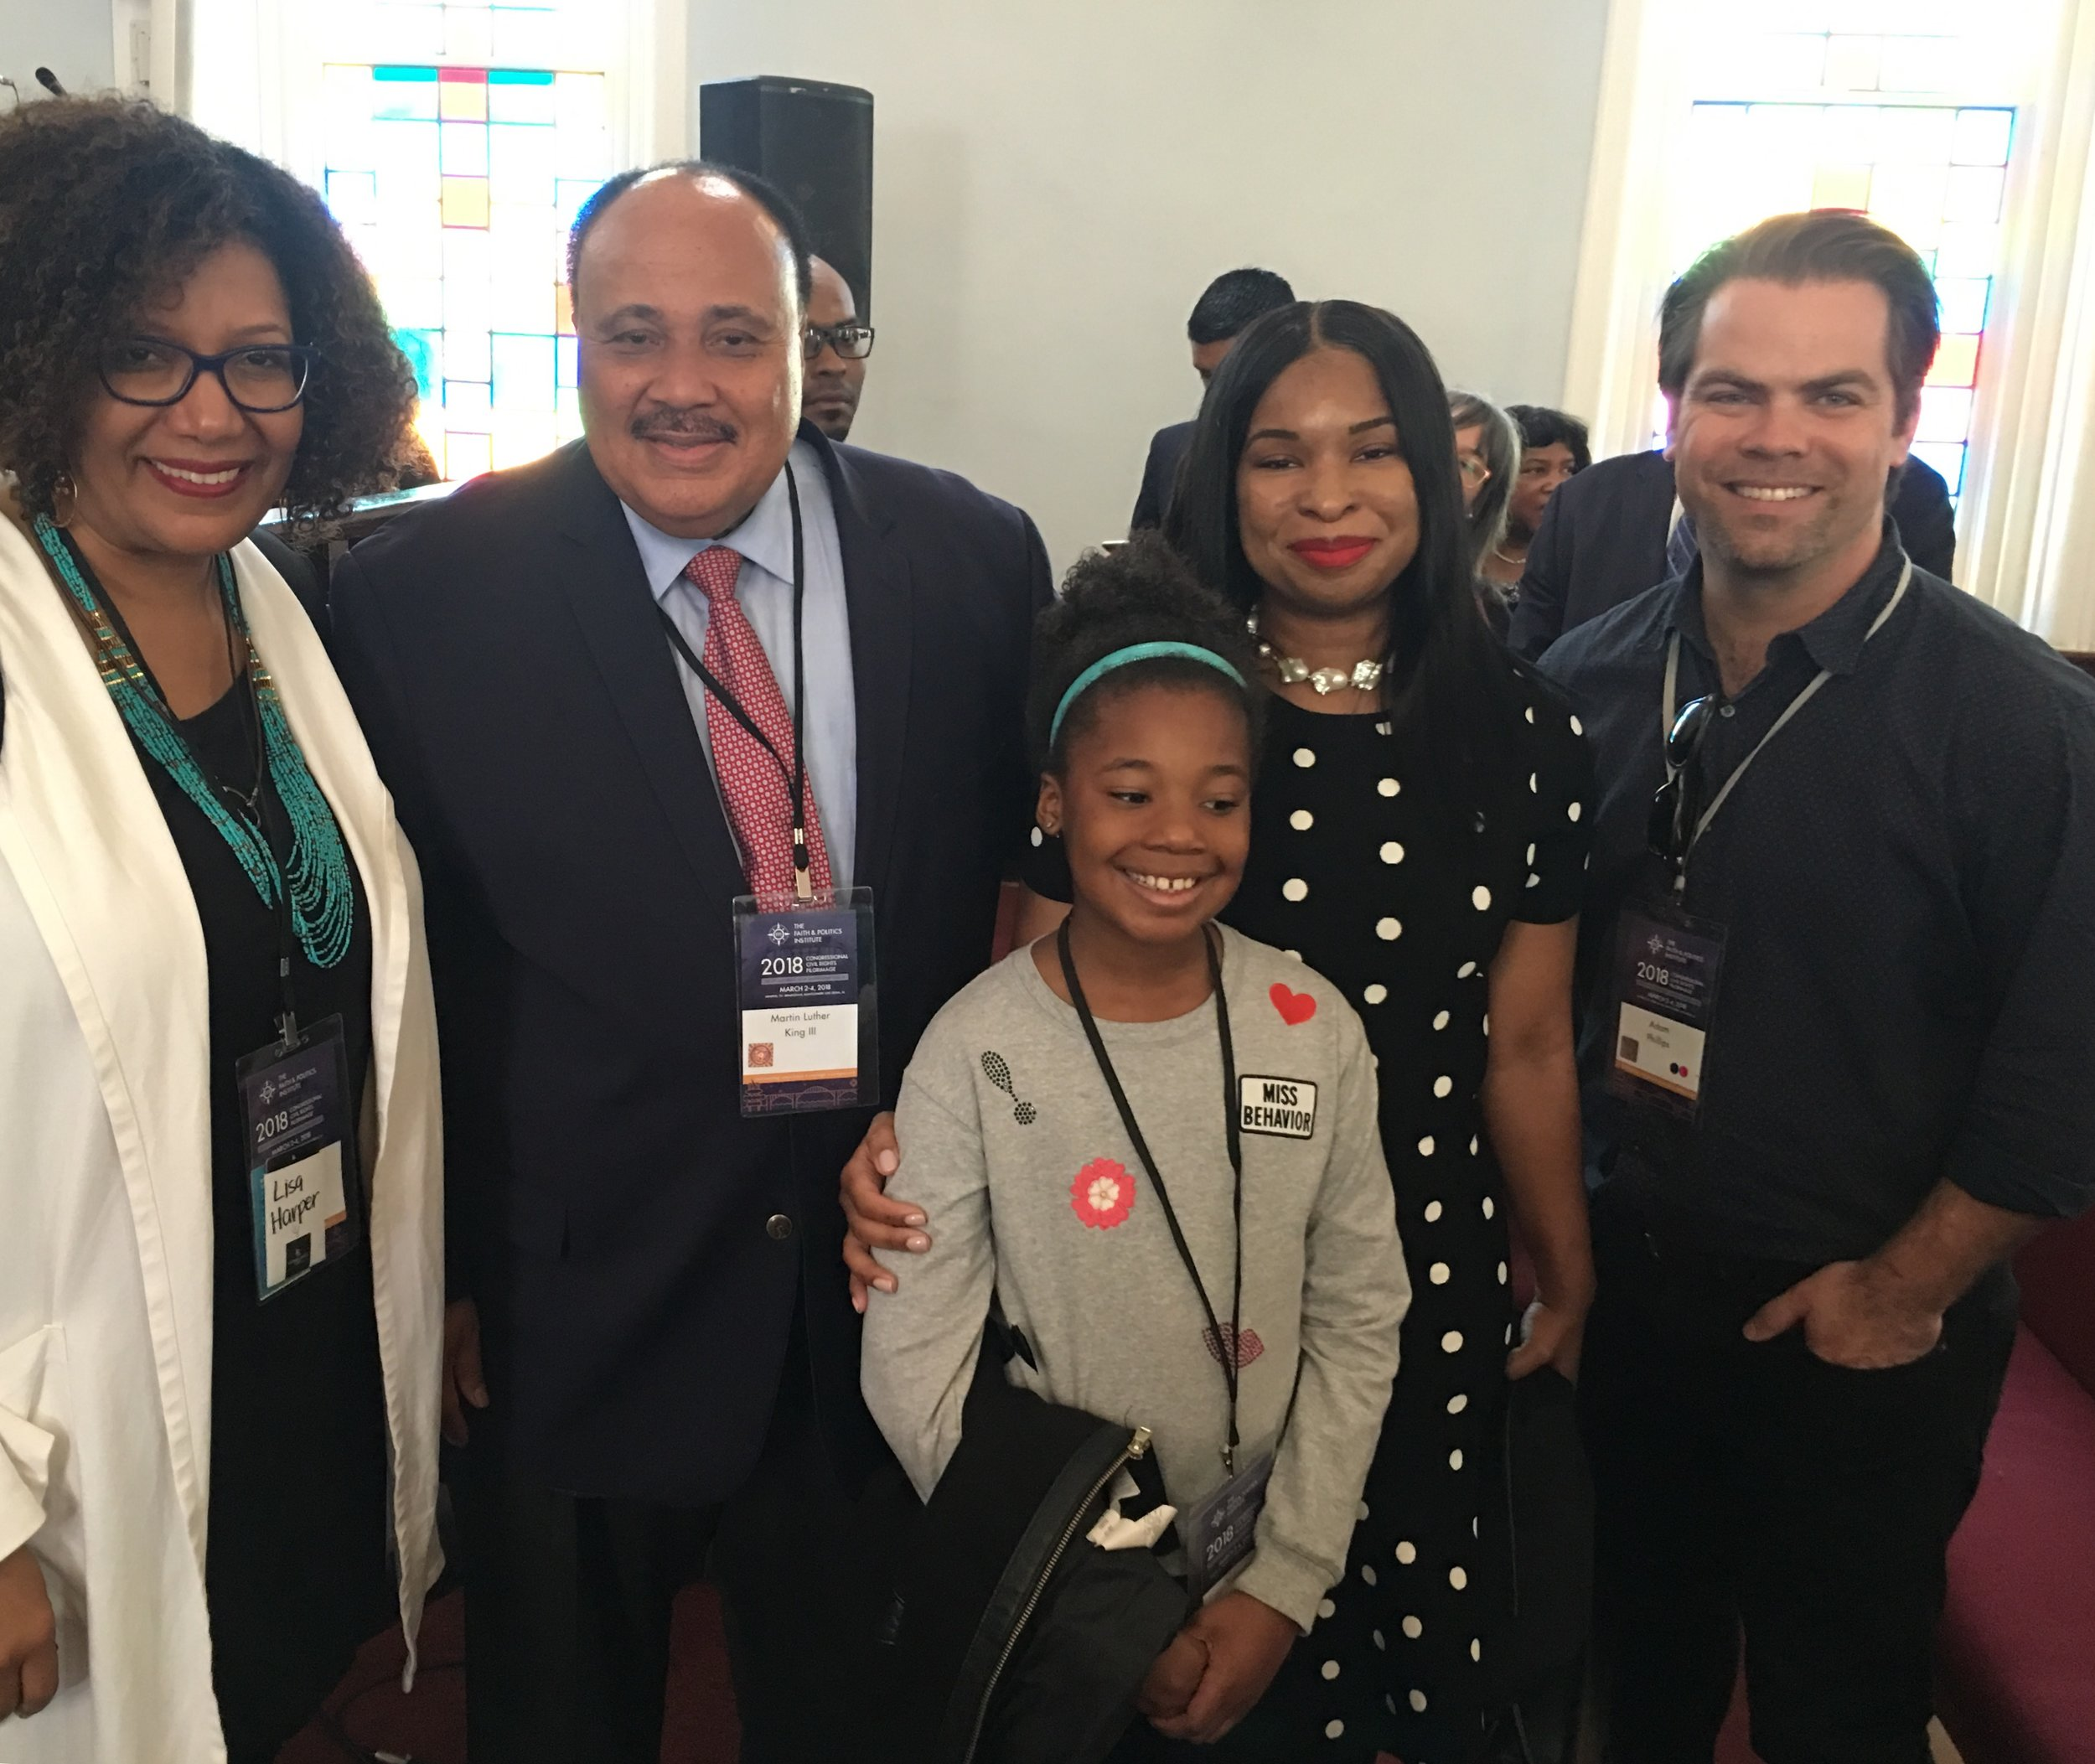 Lisa Sharon Harper and Adam Phillips with Martin Luther King III and his family